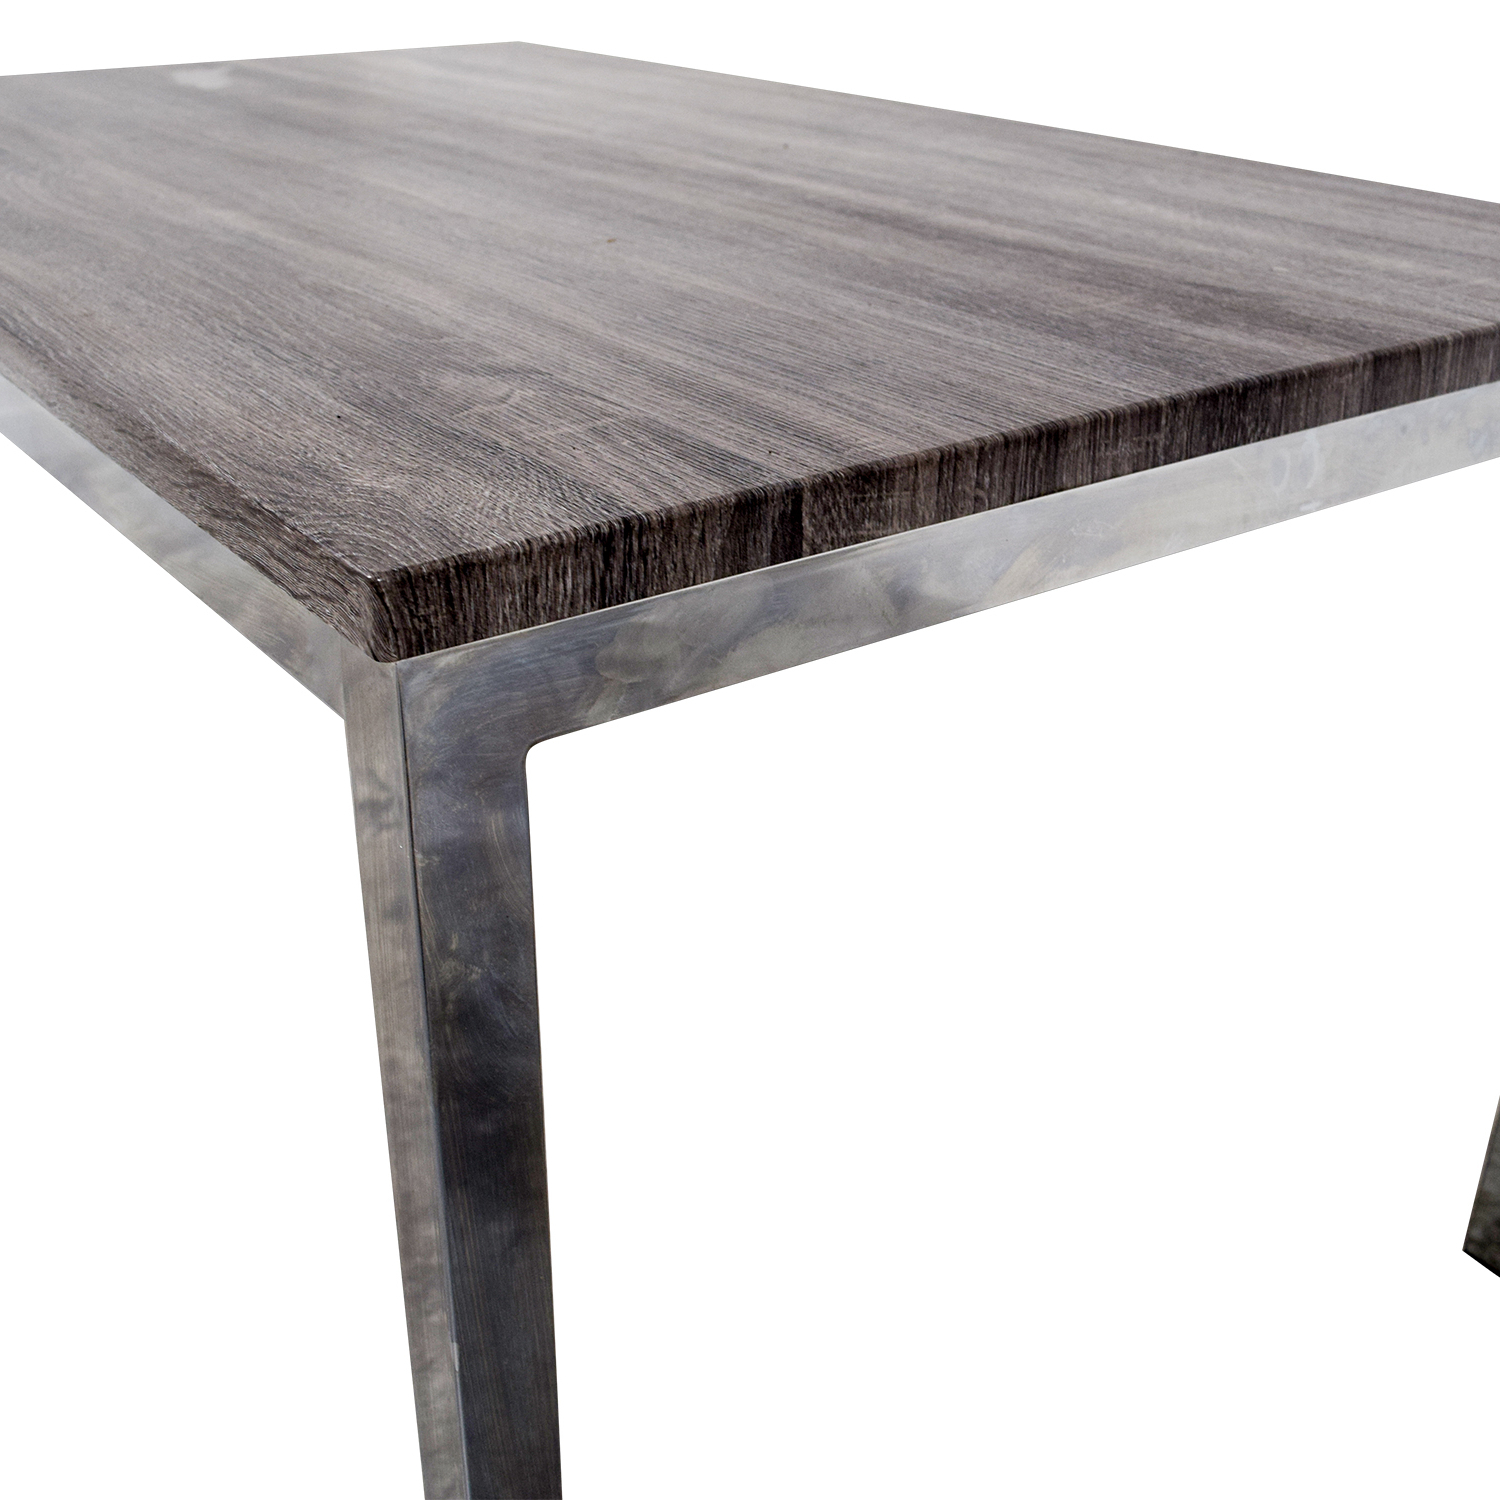 [%31% Off – Wildon Home Wildon Home Rustic Wood Top And Chrome Dining Table /  Tables Throughout Most Current Sideboards By Wildon Home|Sideboards By Wildon Home In Most Popular 31% Off – Wildon Home Wildon Home Rustic Wood Top And Chrome Dining Table /  Tables|Most Recent Sideboards By Wildon Home With 31% Off – Wildon Home Wildon Home Rustic Wood Top And Chrome Dining Table /  Tables|Recent 31% Off – Wildon Home Wildon Home Rustic Wood Top And Chrome Dining Table /  Tables Pertaining To Sideboards By Wildon Home%] (View 1 of 20)